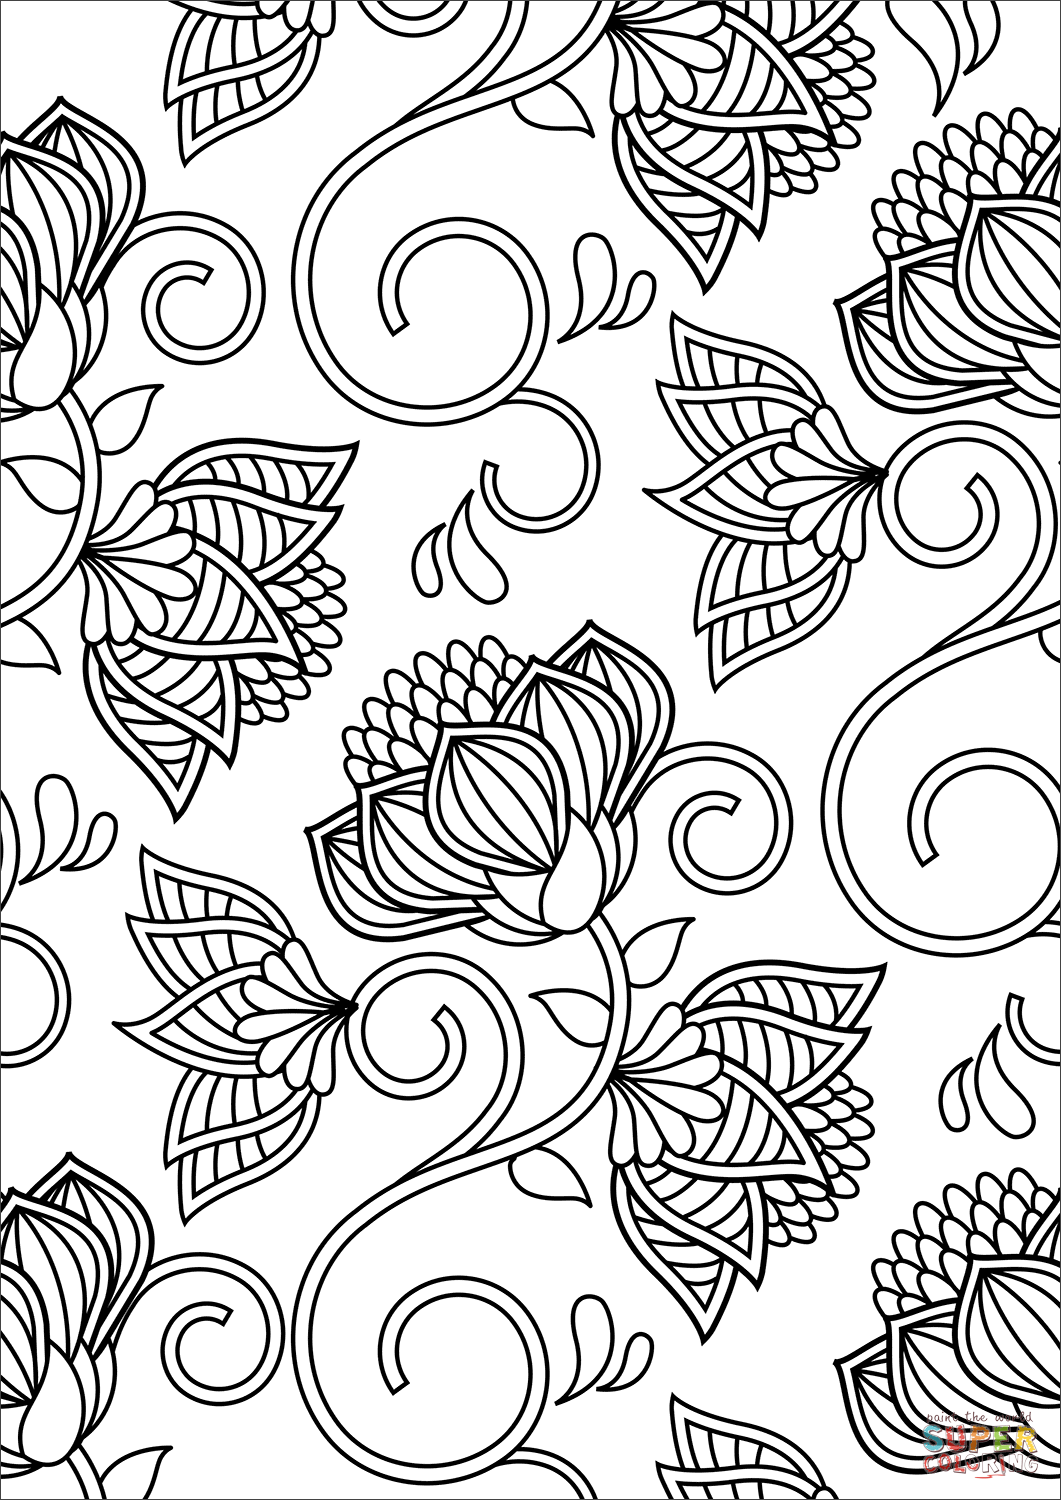 coloring pattern pages floral pattern coloring page free printable coloring pages pages coloring pattern